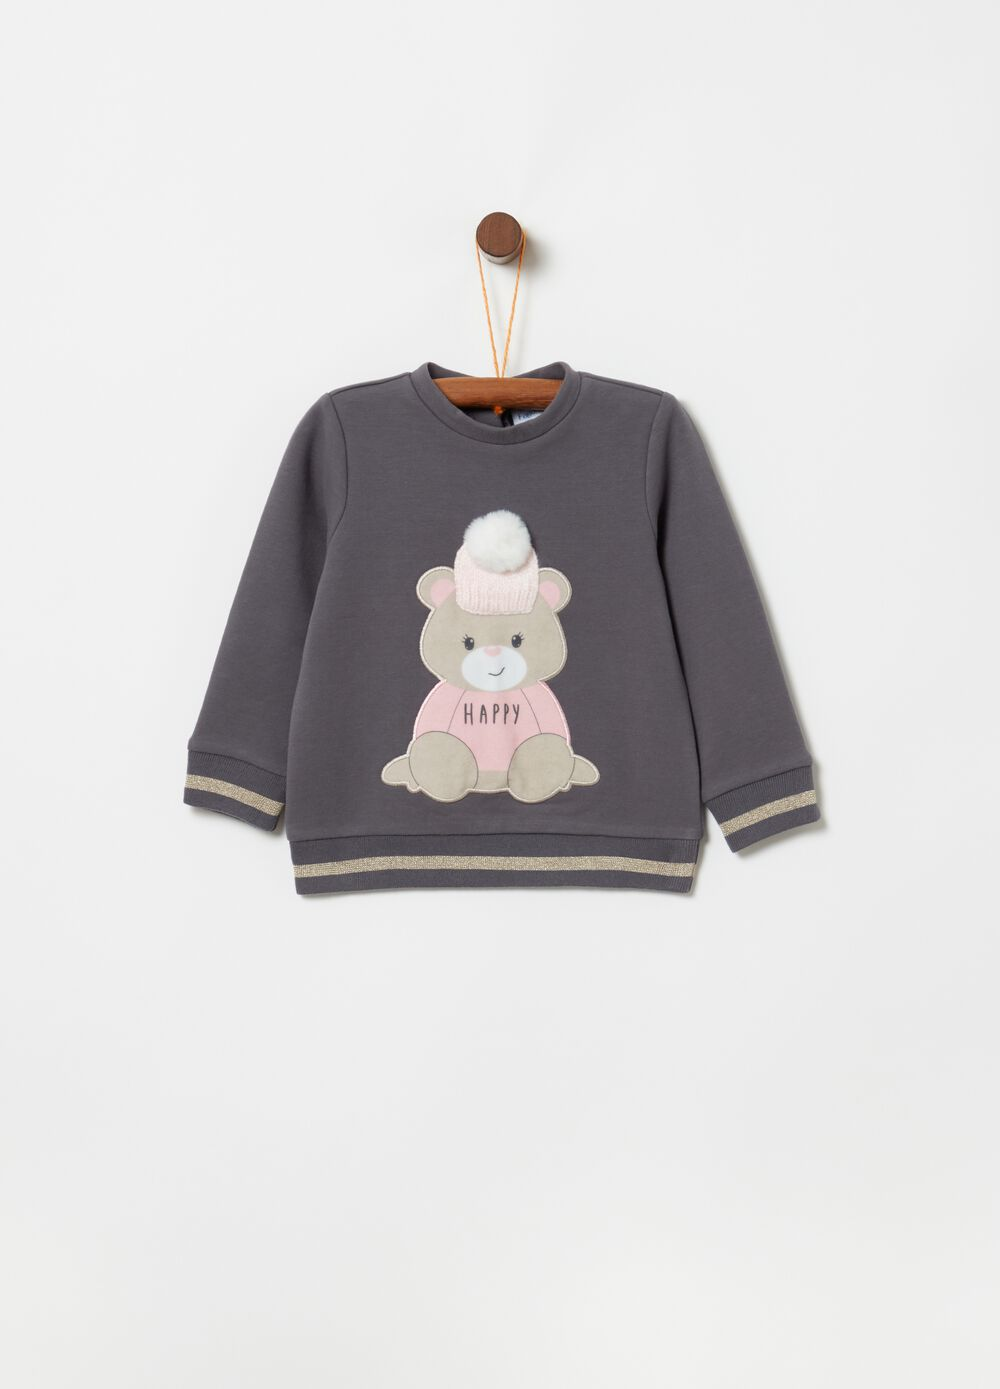 Sweatshirt with teddy bear embroidery and pompom